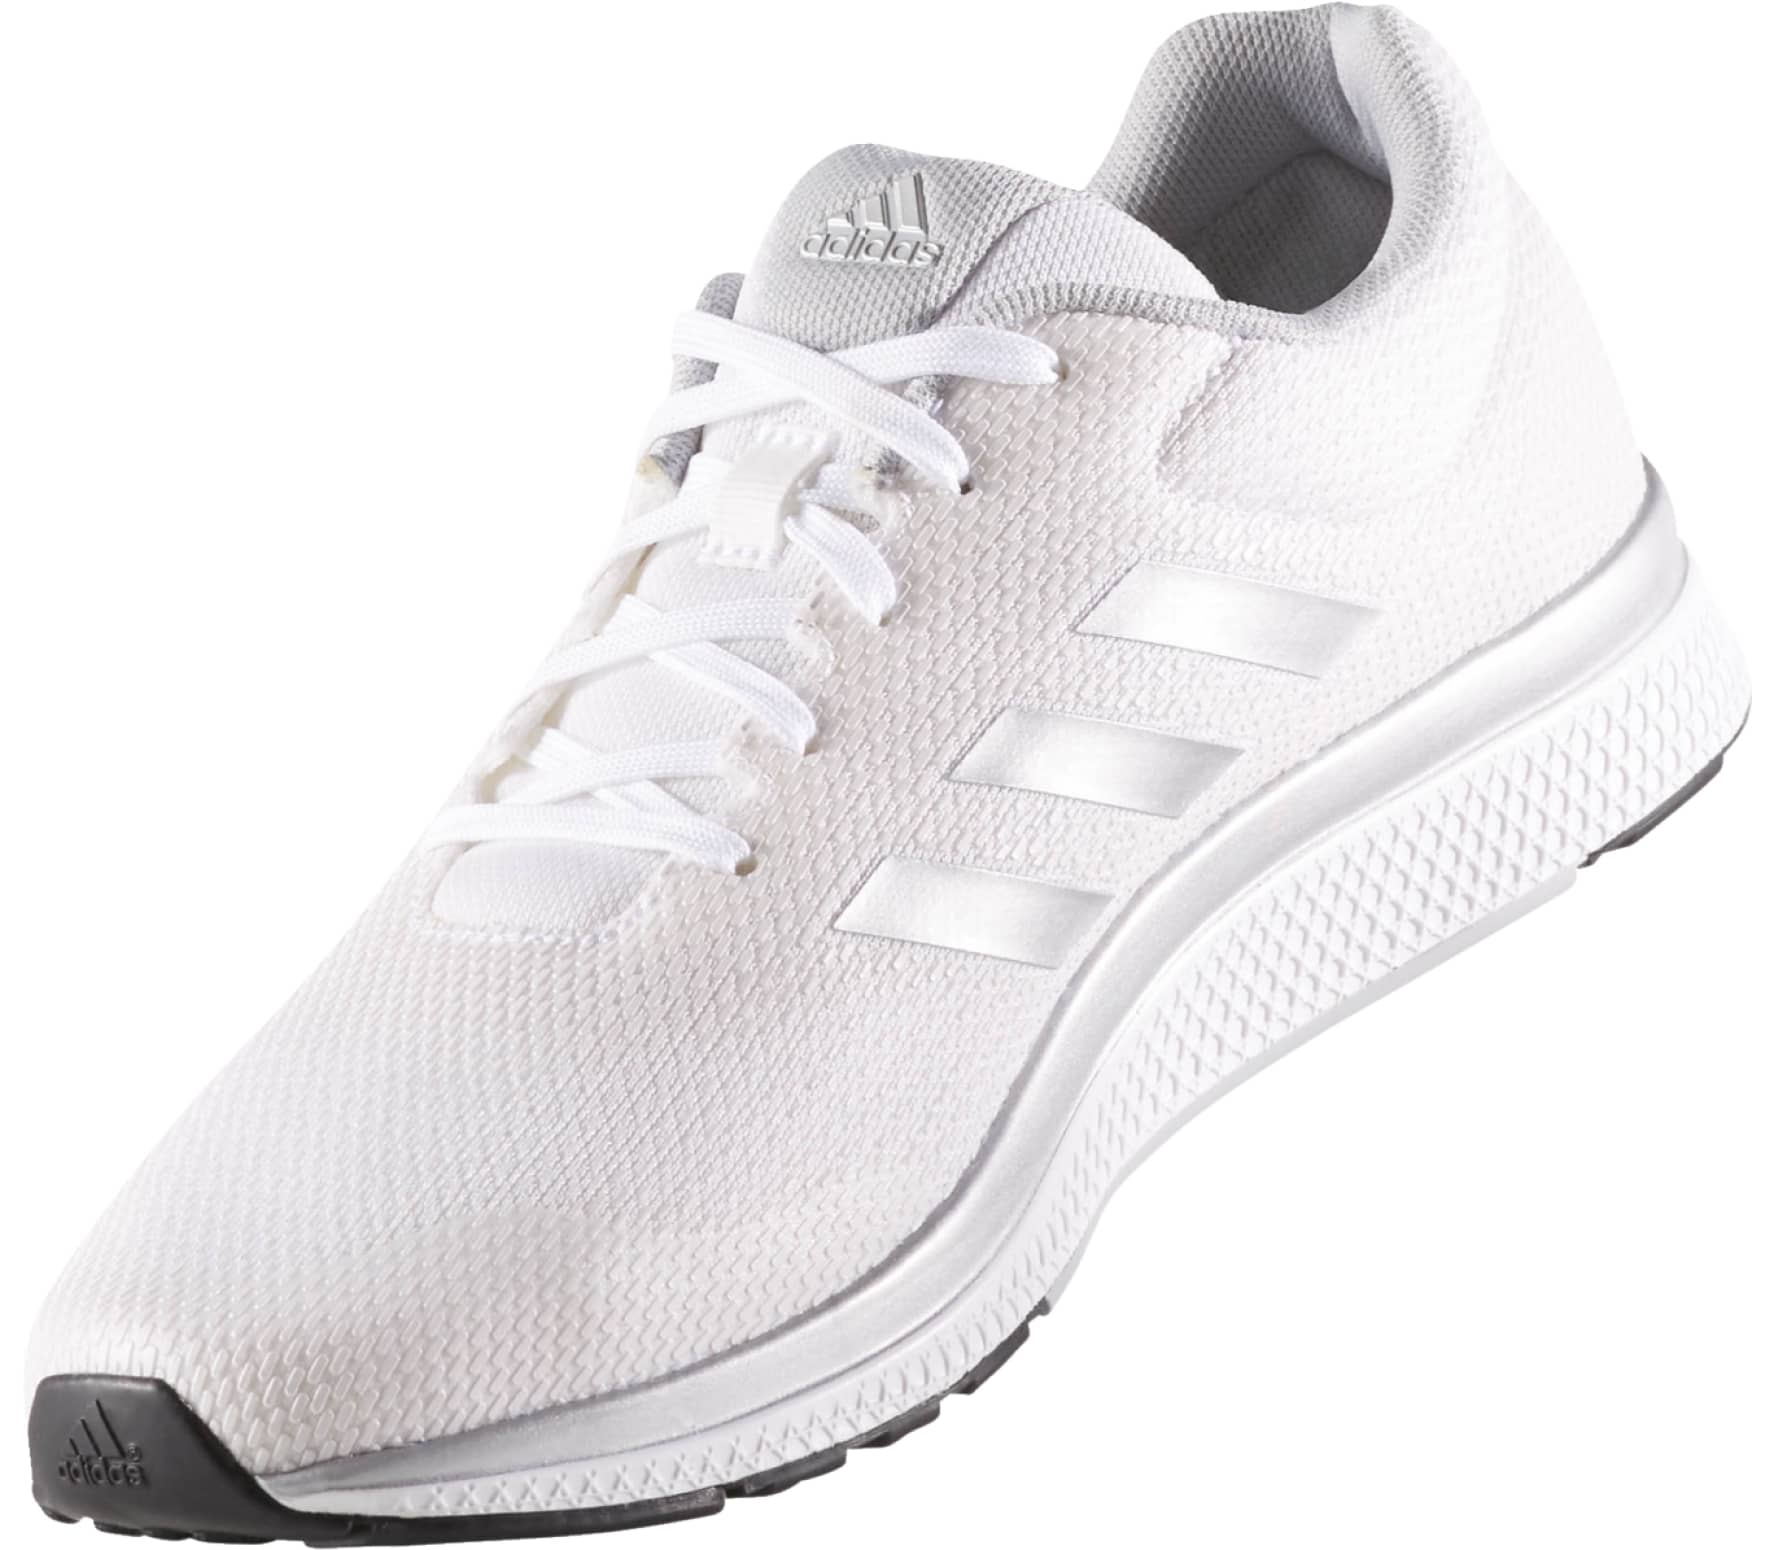 cheap for discount 840c9 bba2c Adidas - Mana Bounce 2 Aramis zapatillas de running para hombre (blanco  plata)